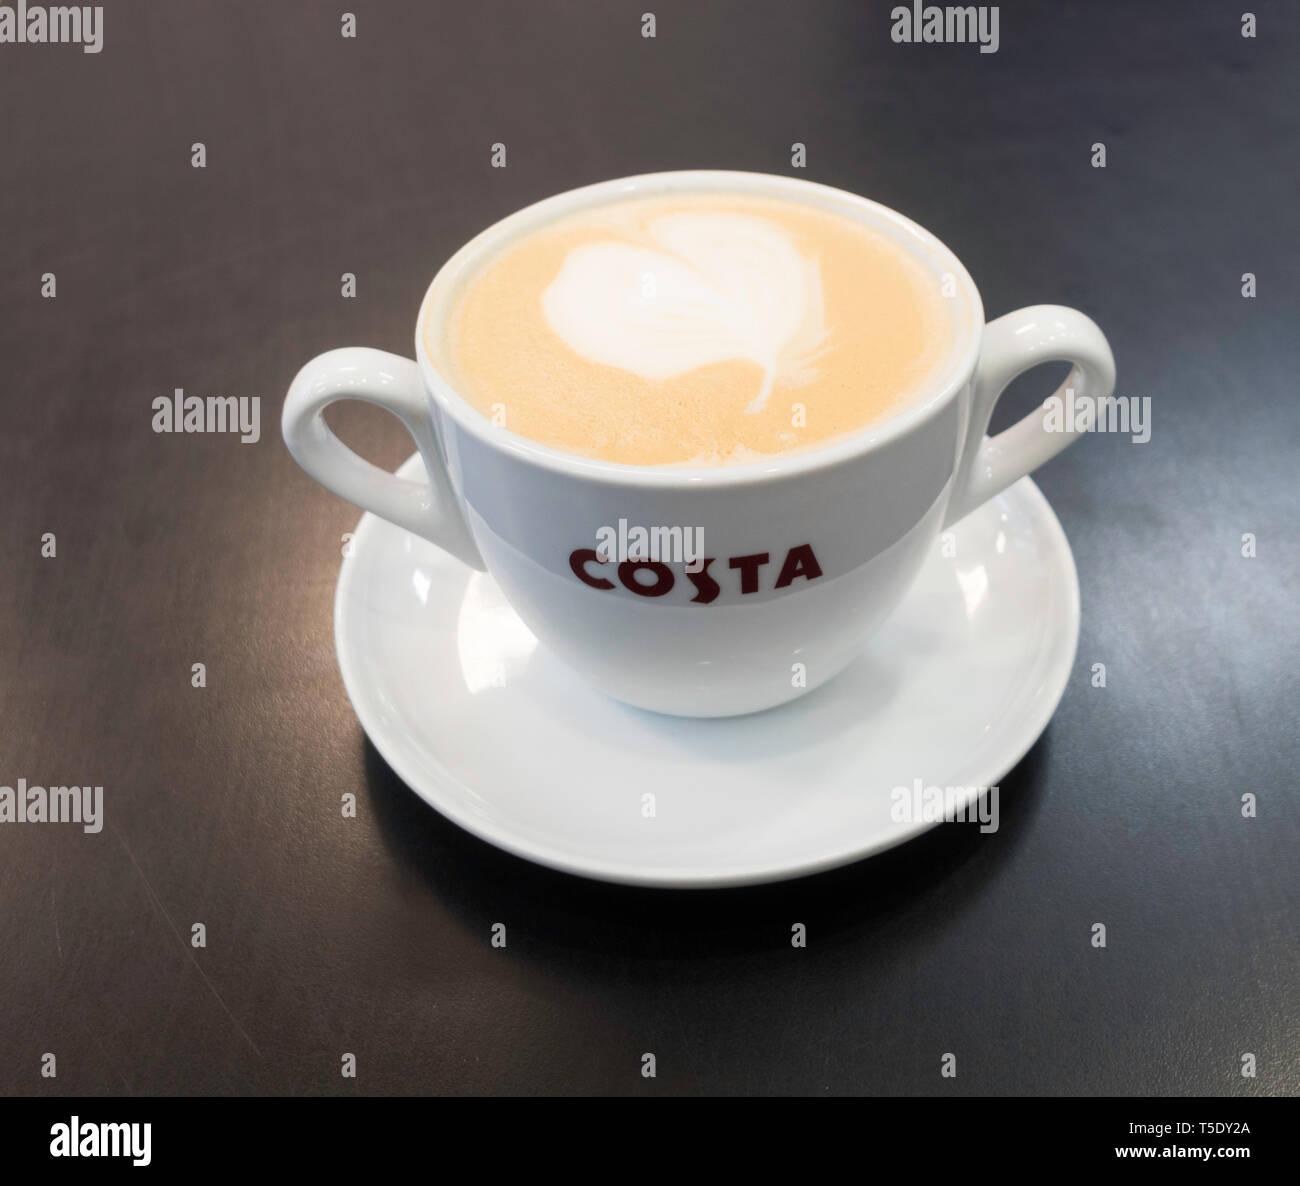 A large double handled cup of Costa latte coffee, England, UK - Stock Image